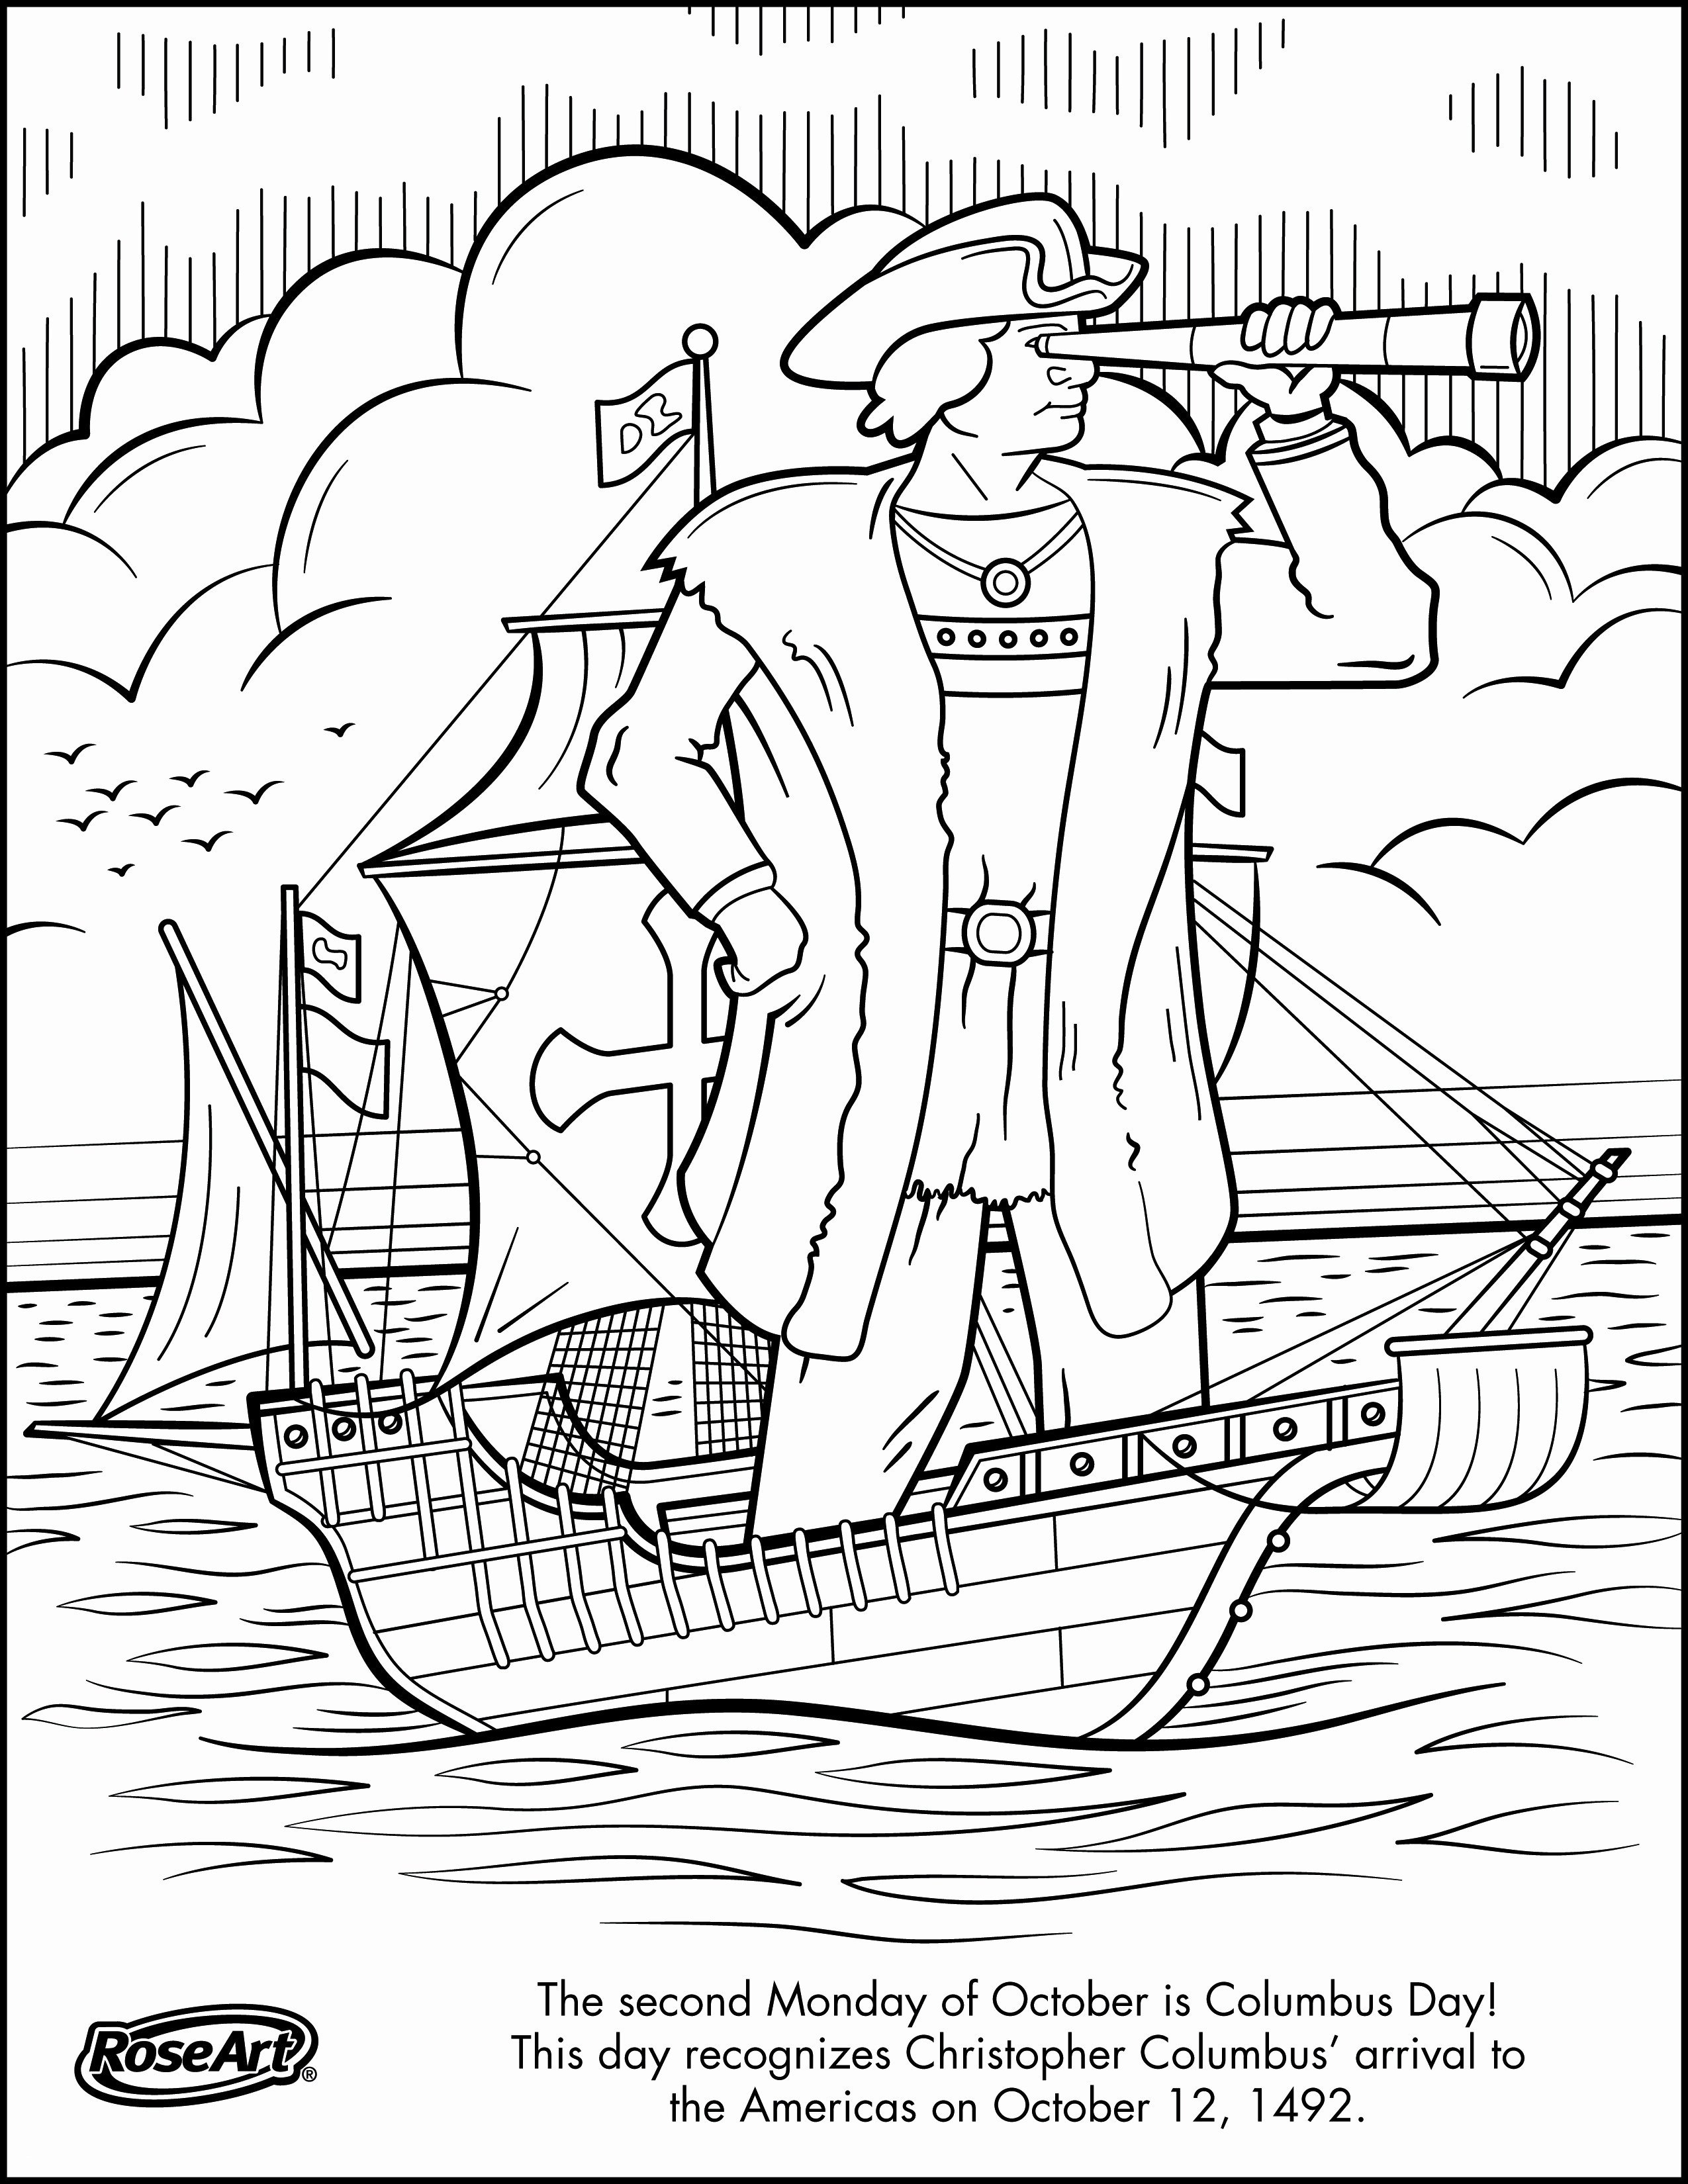 Ausmalbilder U Boot Frisch 23 Chocolate Candy Coloring Pages Gallery Coloring Sheets Galerie